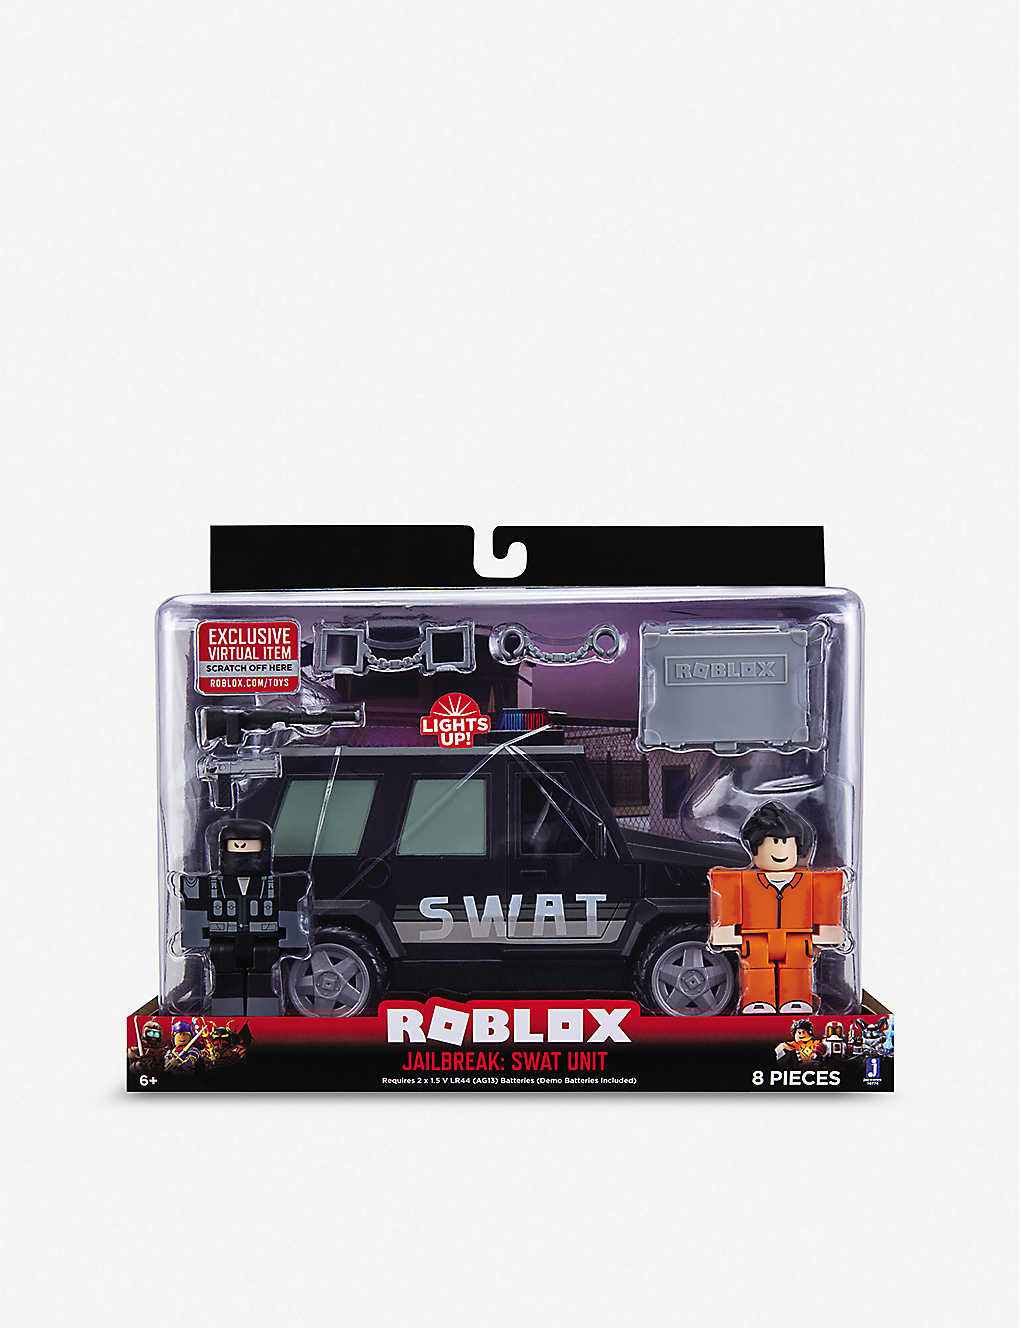 Roblox Projects Controllable Fire Roblox Roblox Jailbreak Swat Unit Playset Selfridges Com